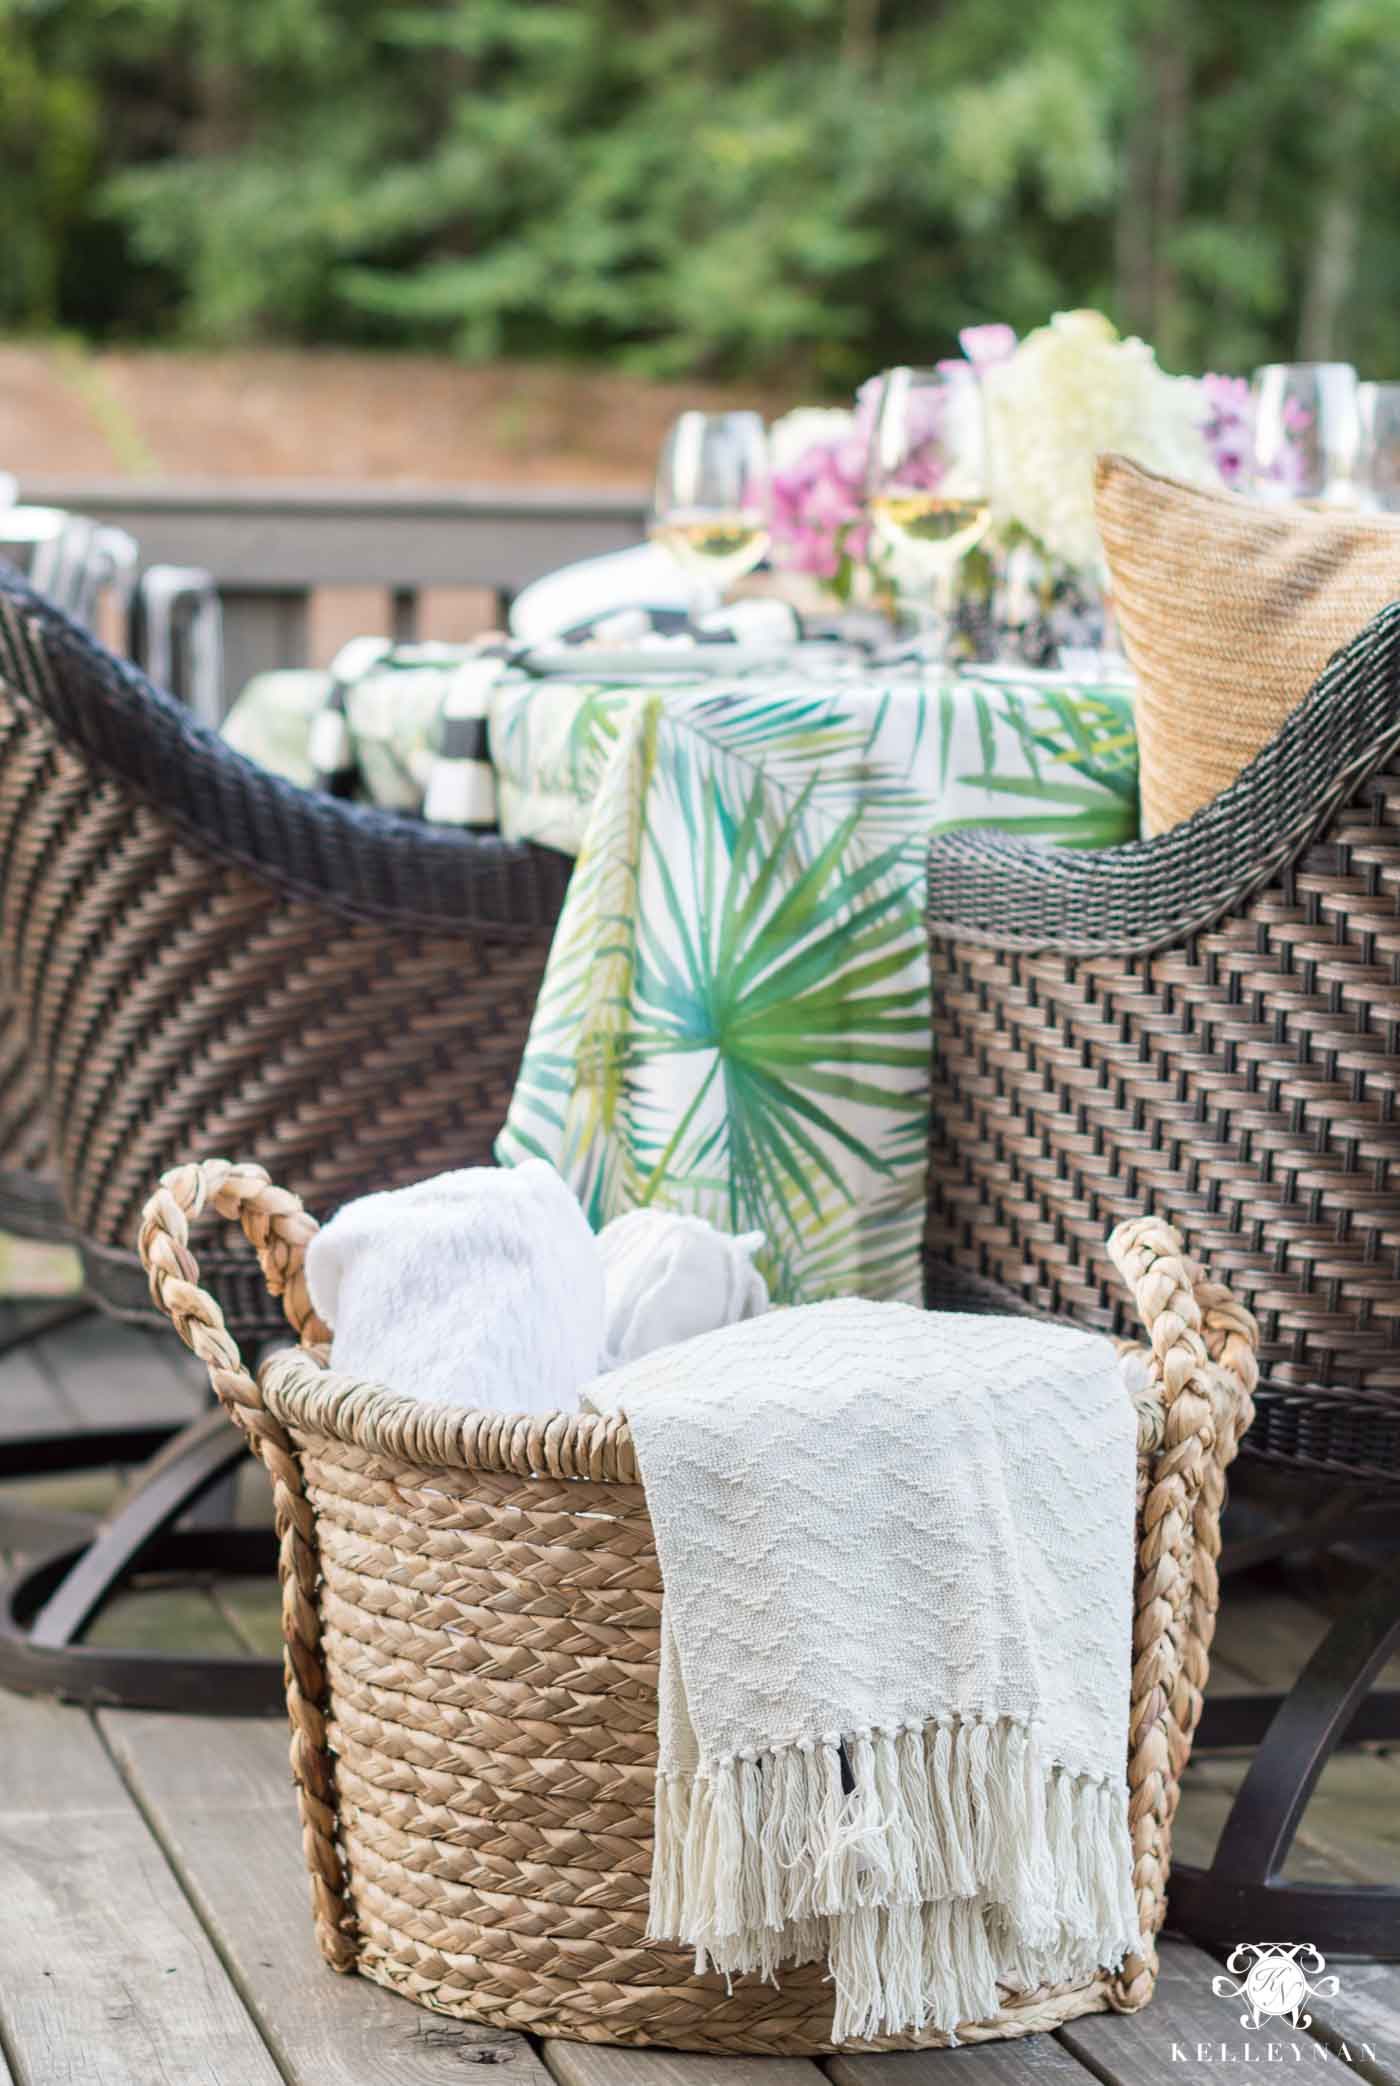 Ideas for dining al fresco during the summer on the deck